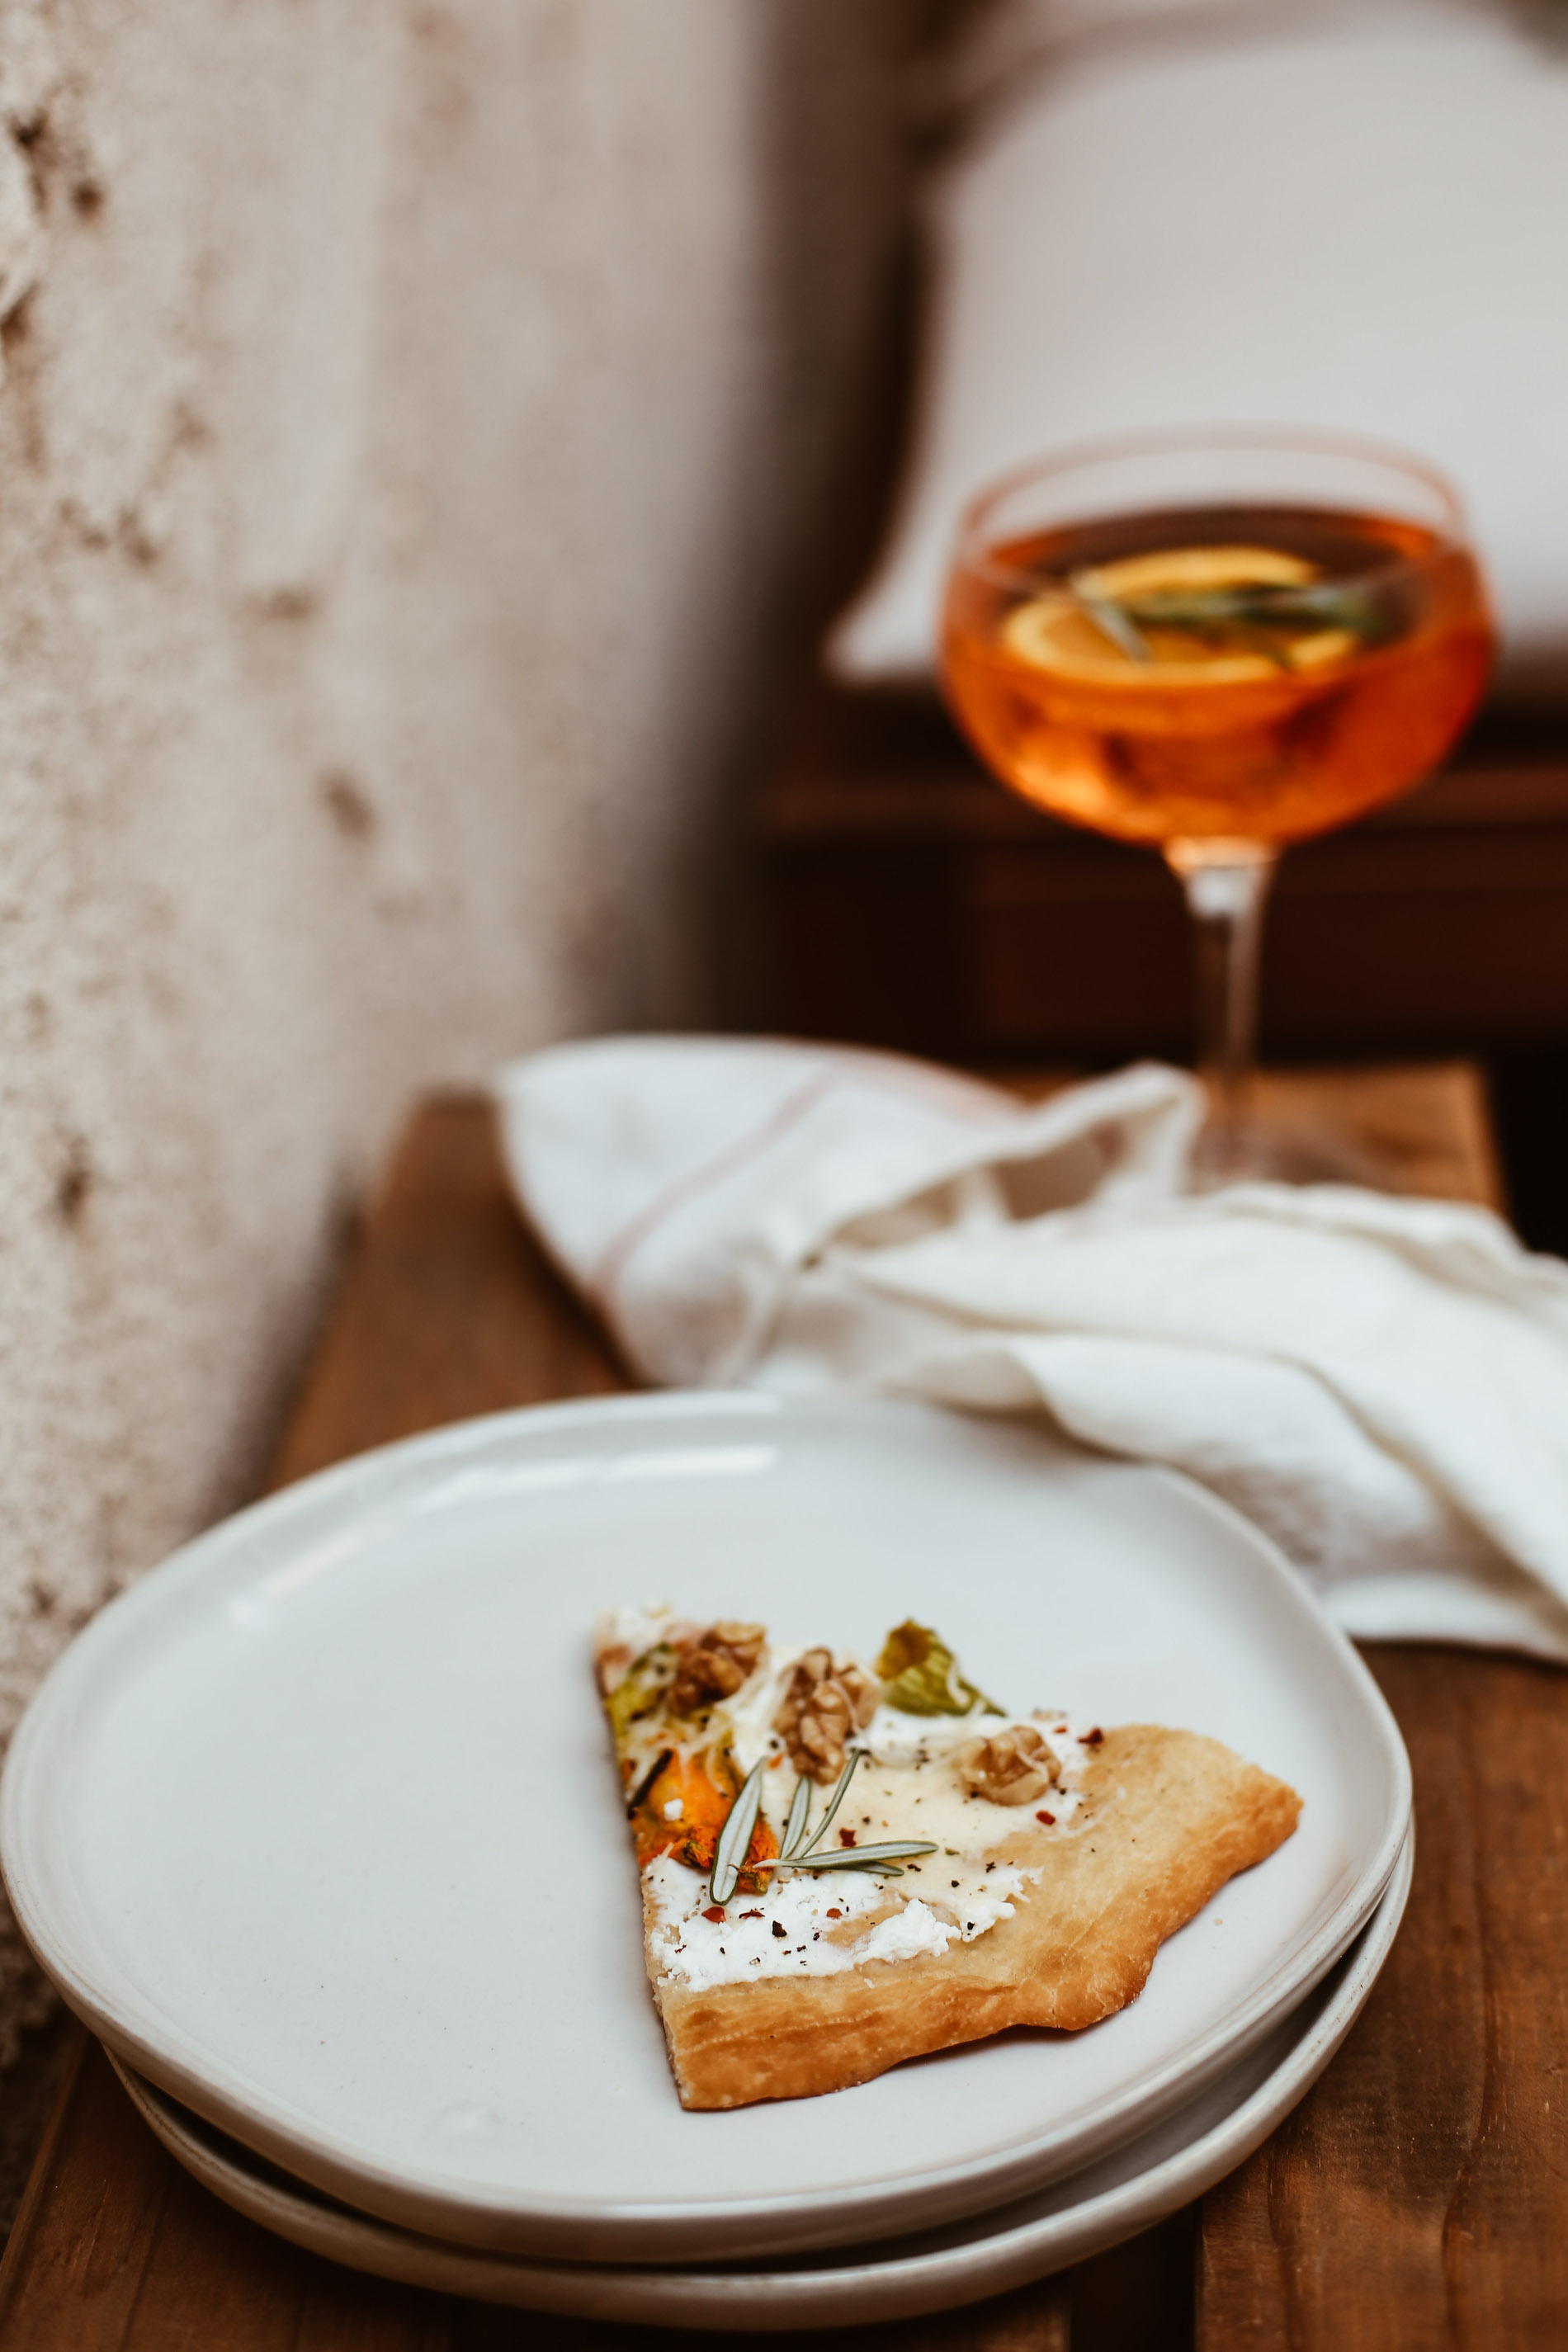 fried pizza with squash blossoms-18.jpg